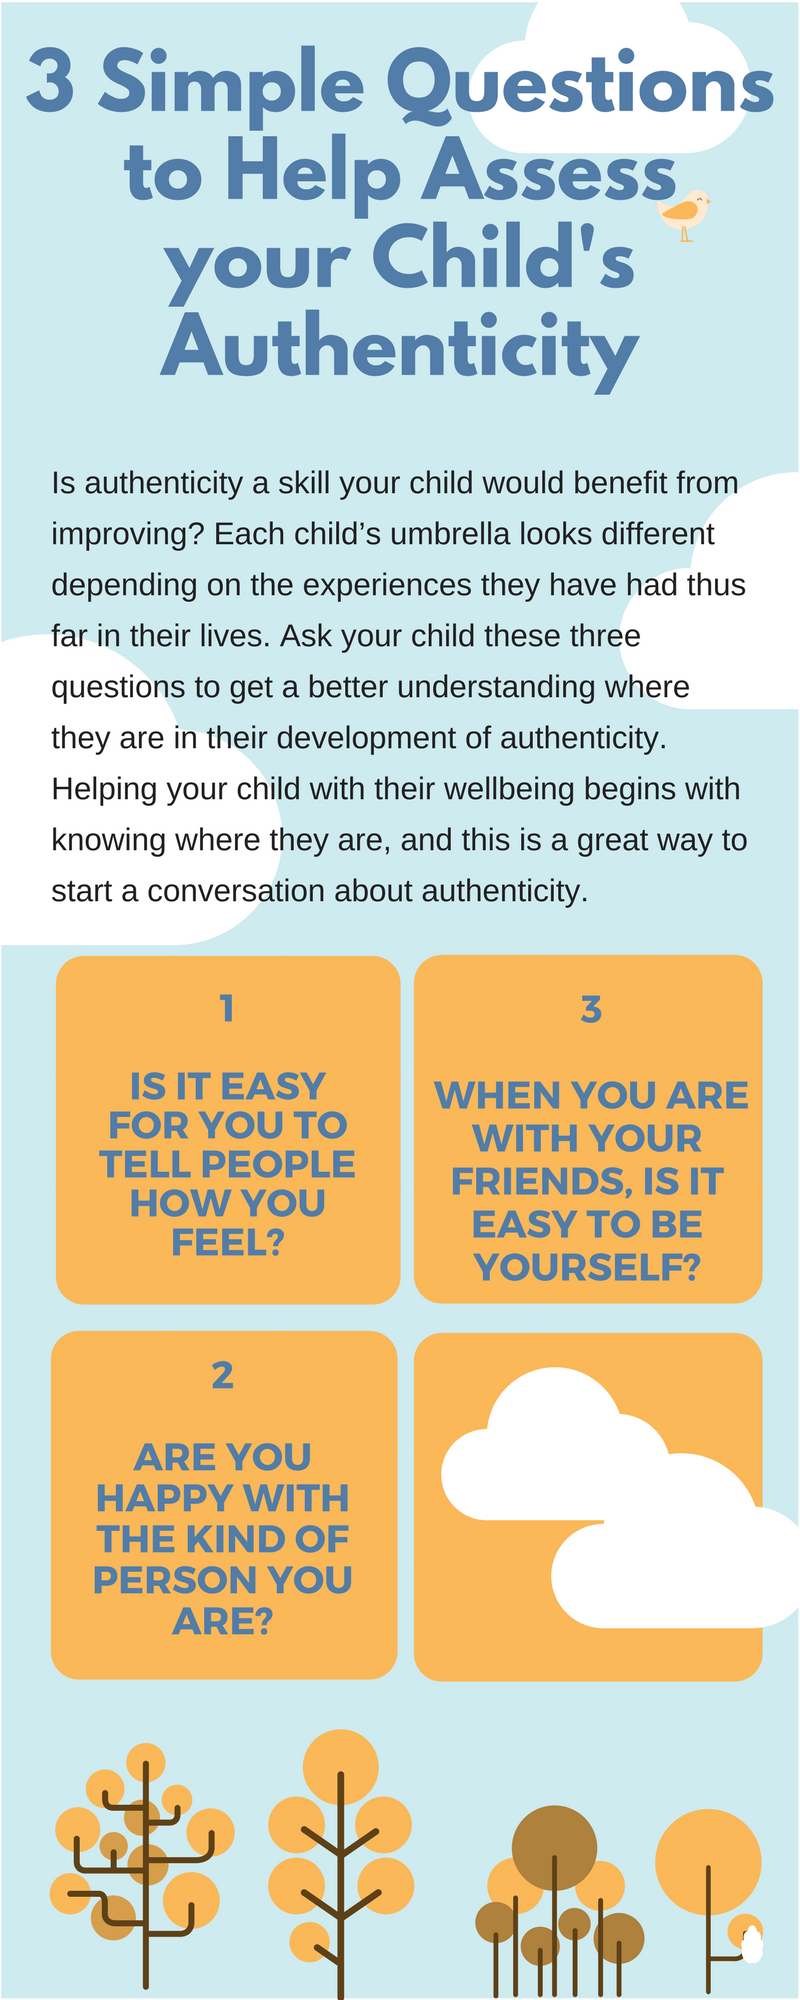 3 Simple Questions to Help Assess your Child's Authenticity